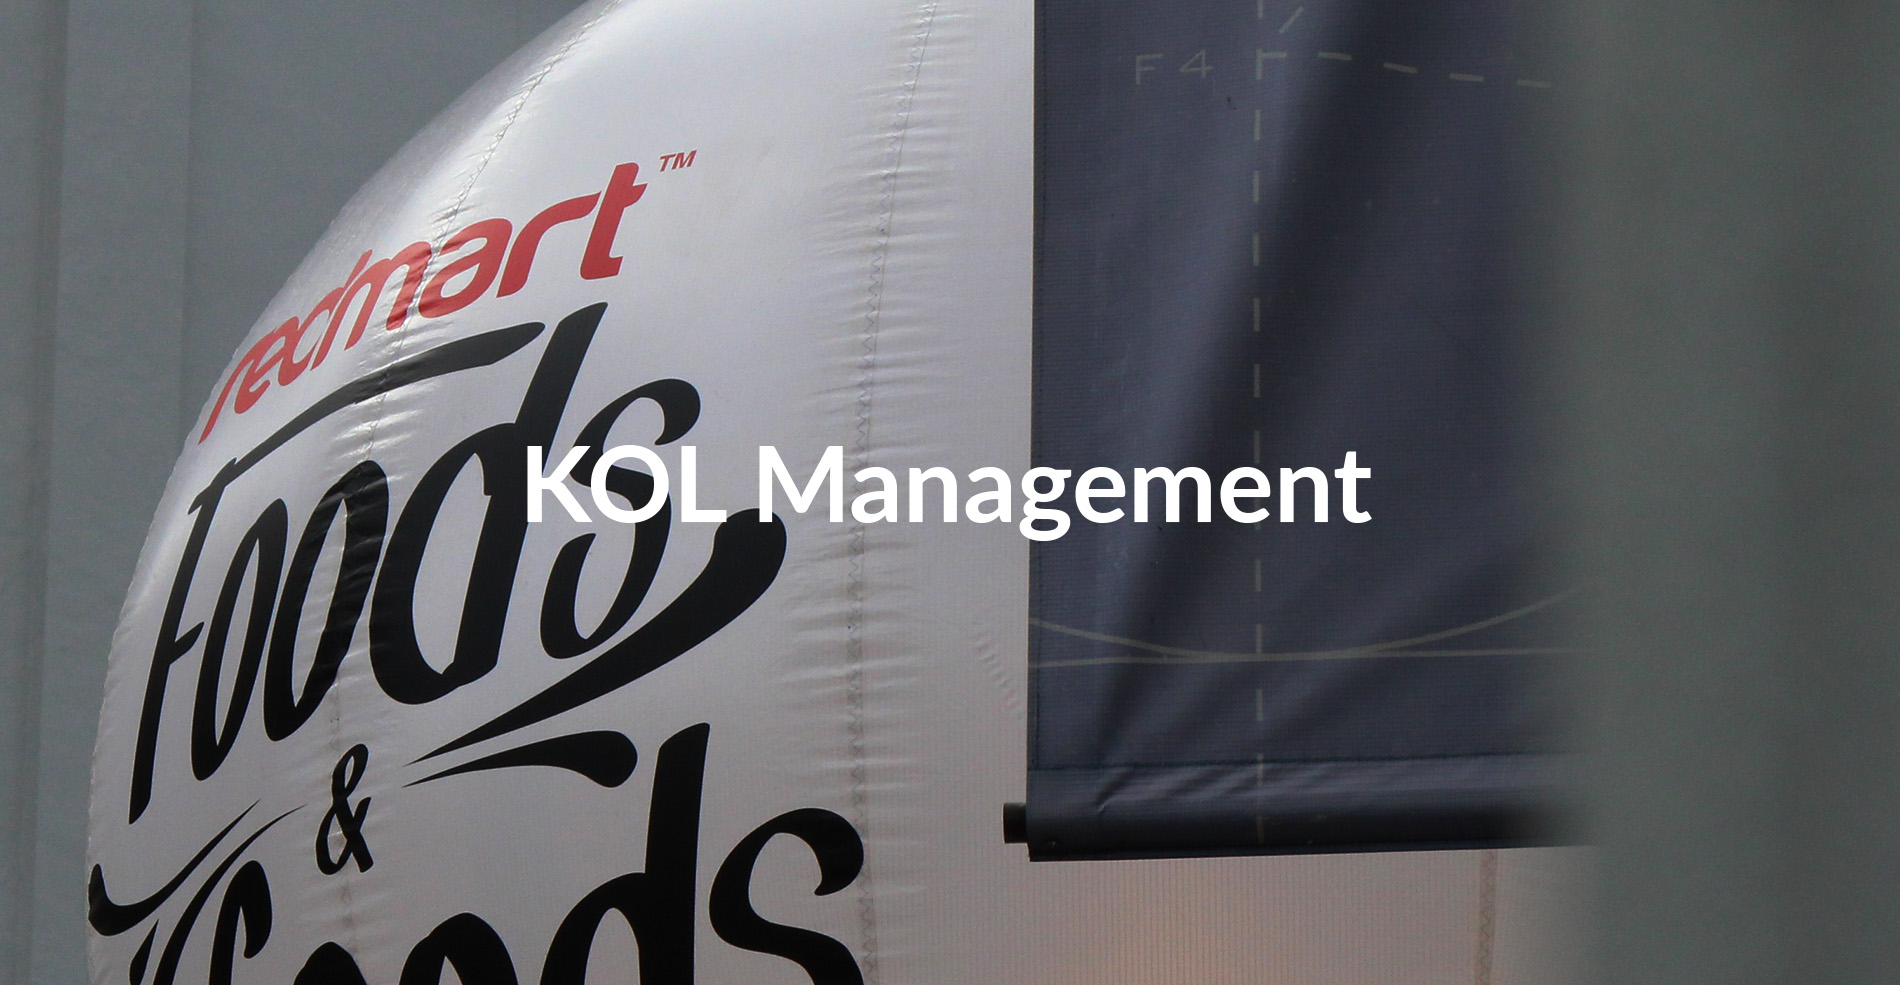 Kolmanagement